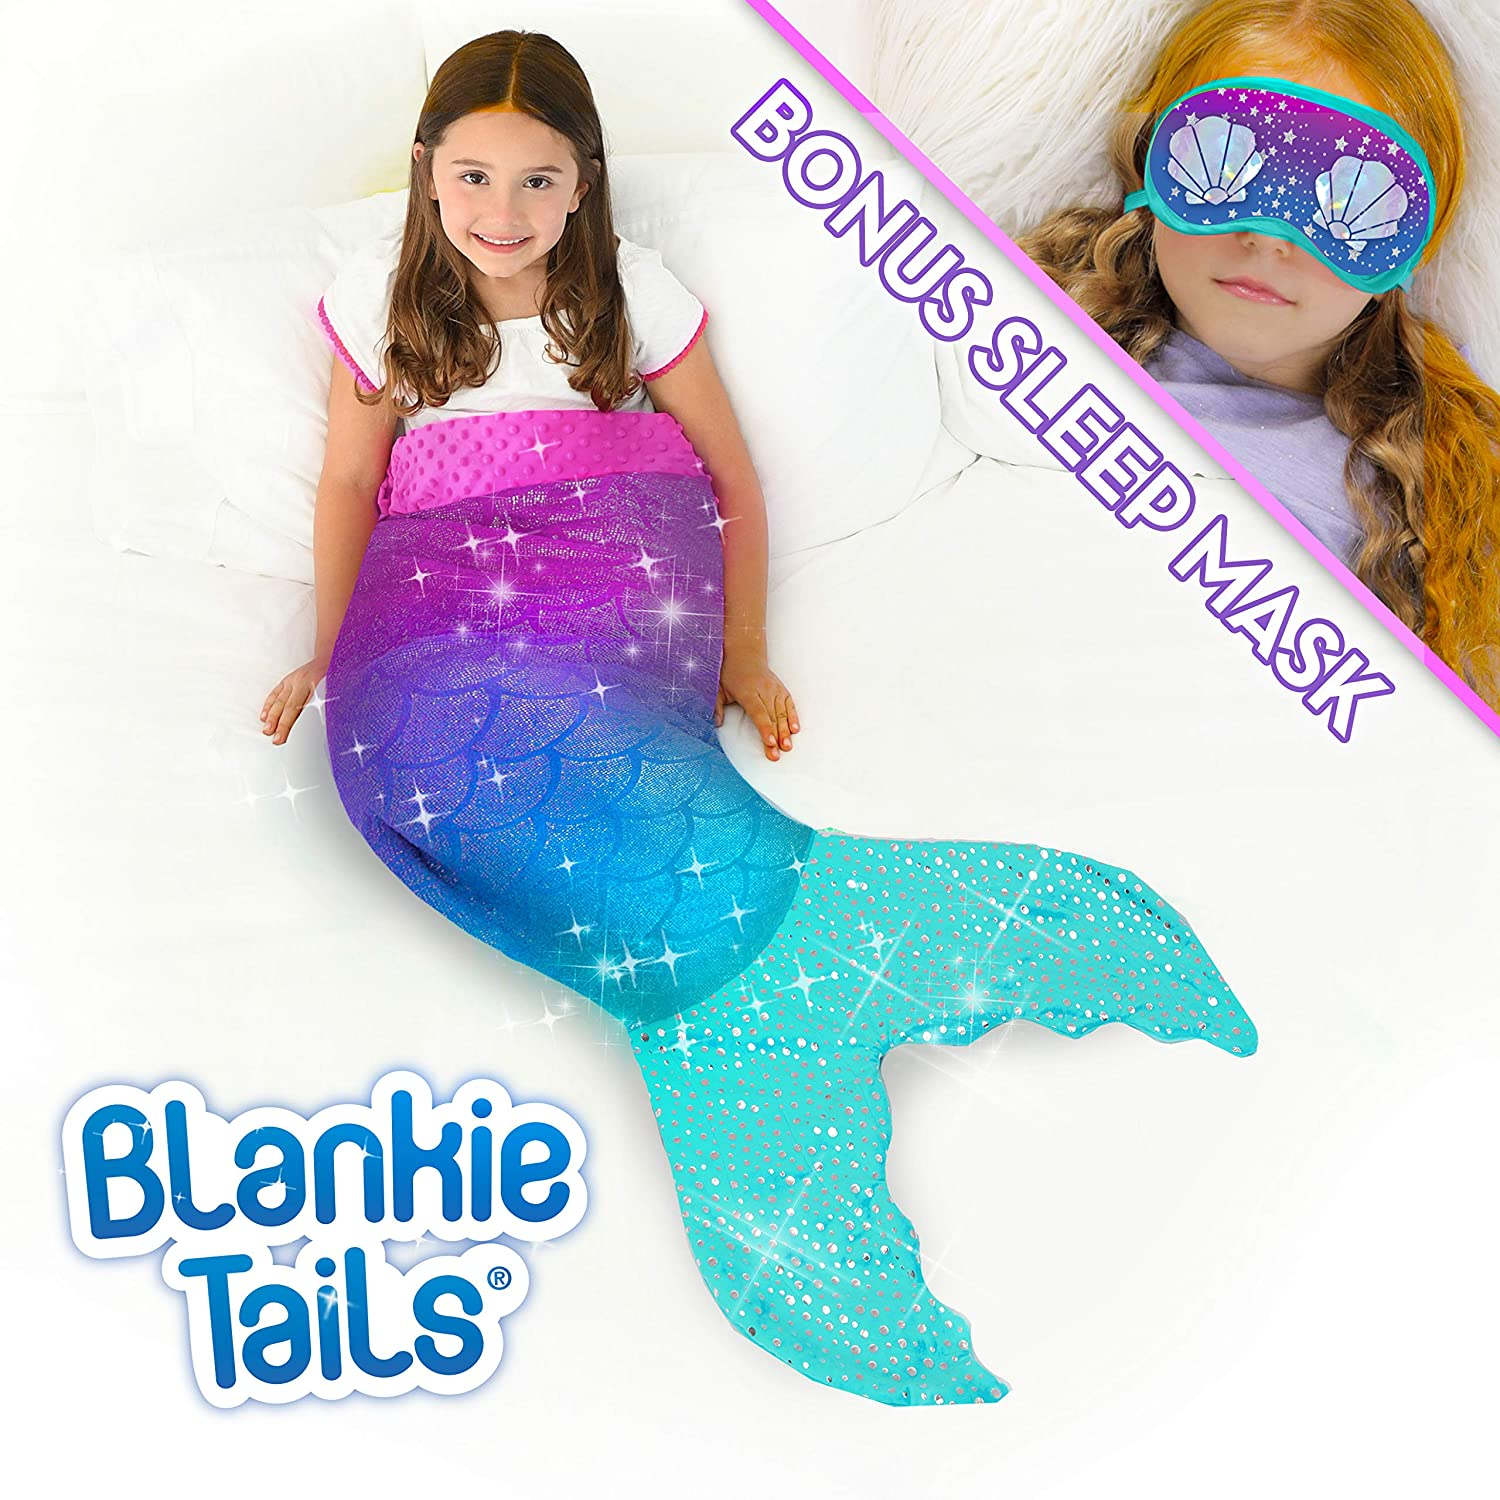 Top 11 Best Mermaid Tail Blankets for Kids Reviews in 2019 7